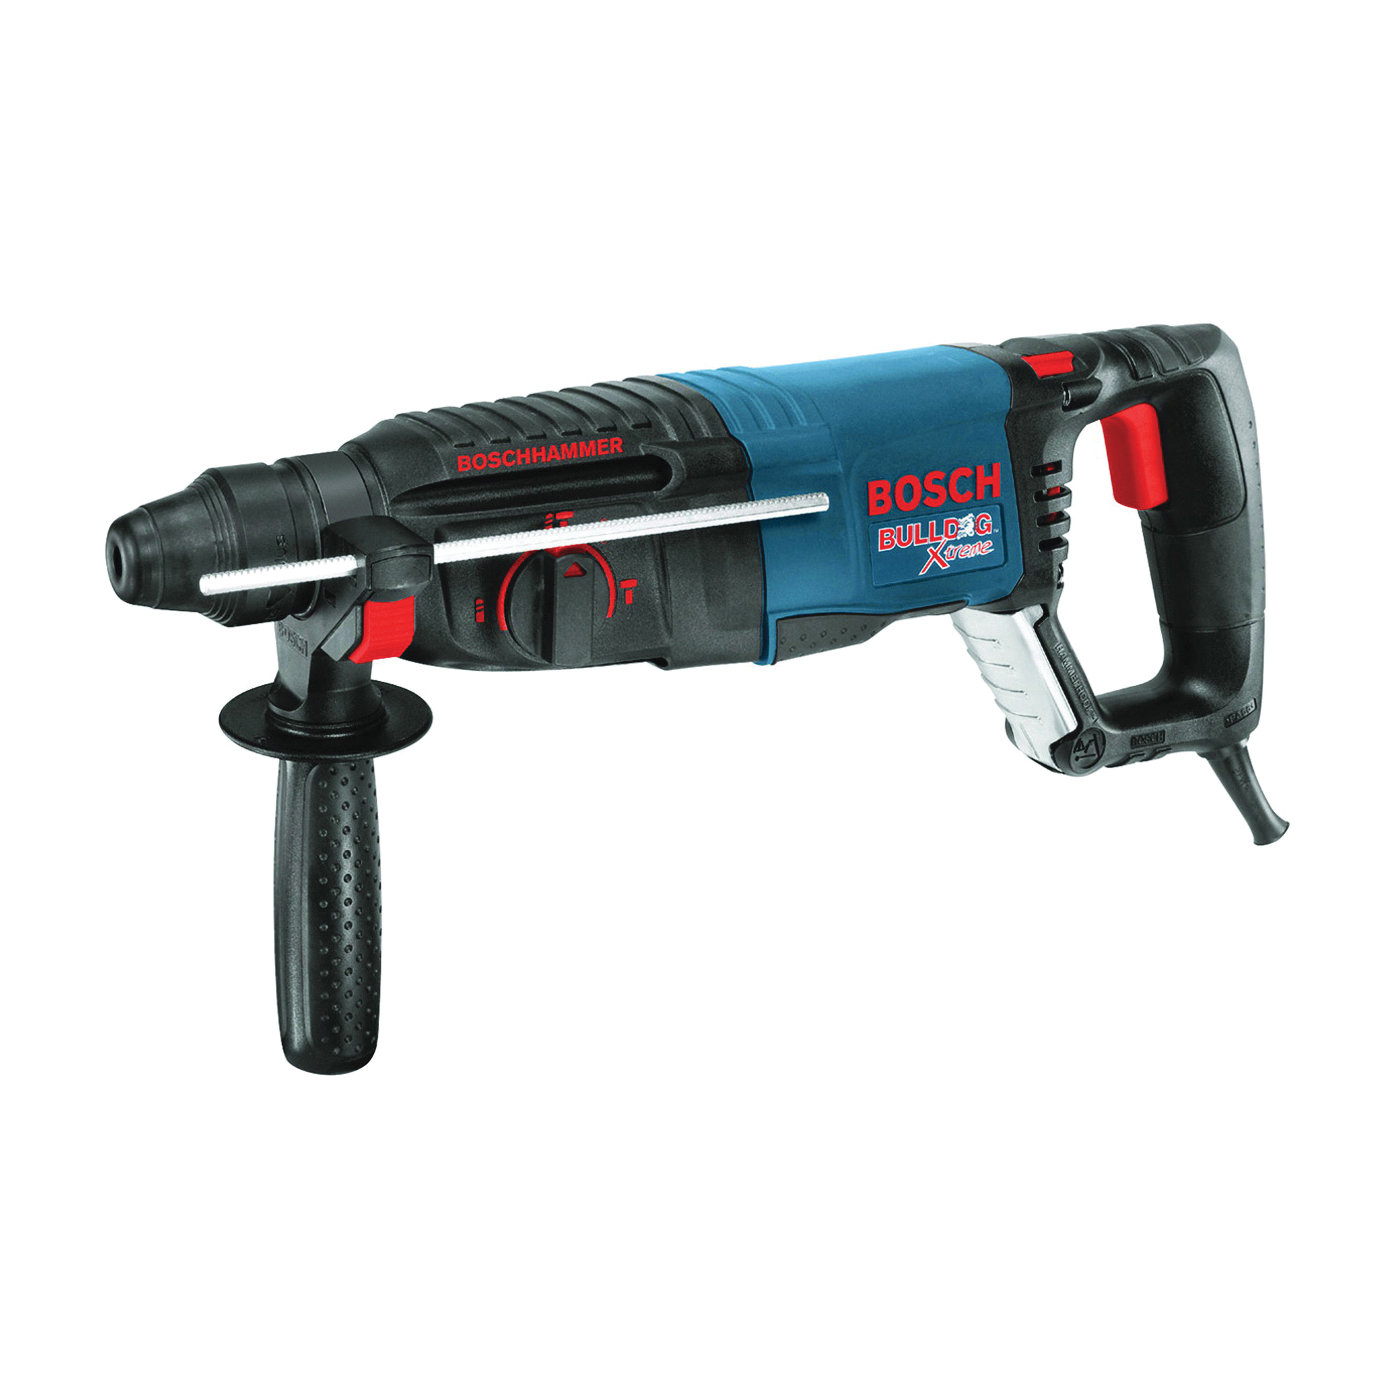 Picture of Bosch 11255VSR Rotary Hammer, 120 V, 1 Carbide Tip Bit, 2-5/8 in Core Bit Drilling, 3/4 in Chuck, Keyless Chuck